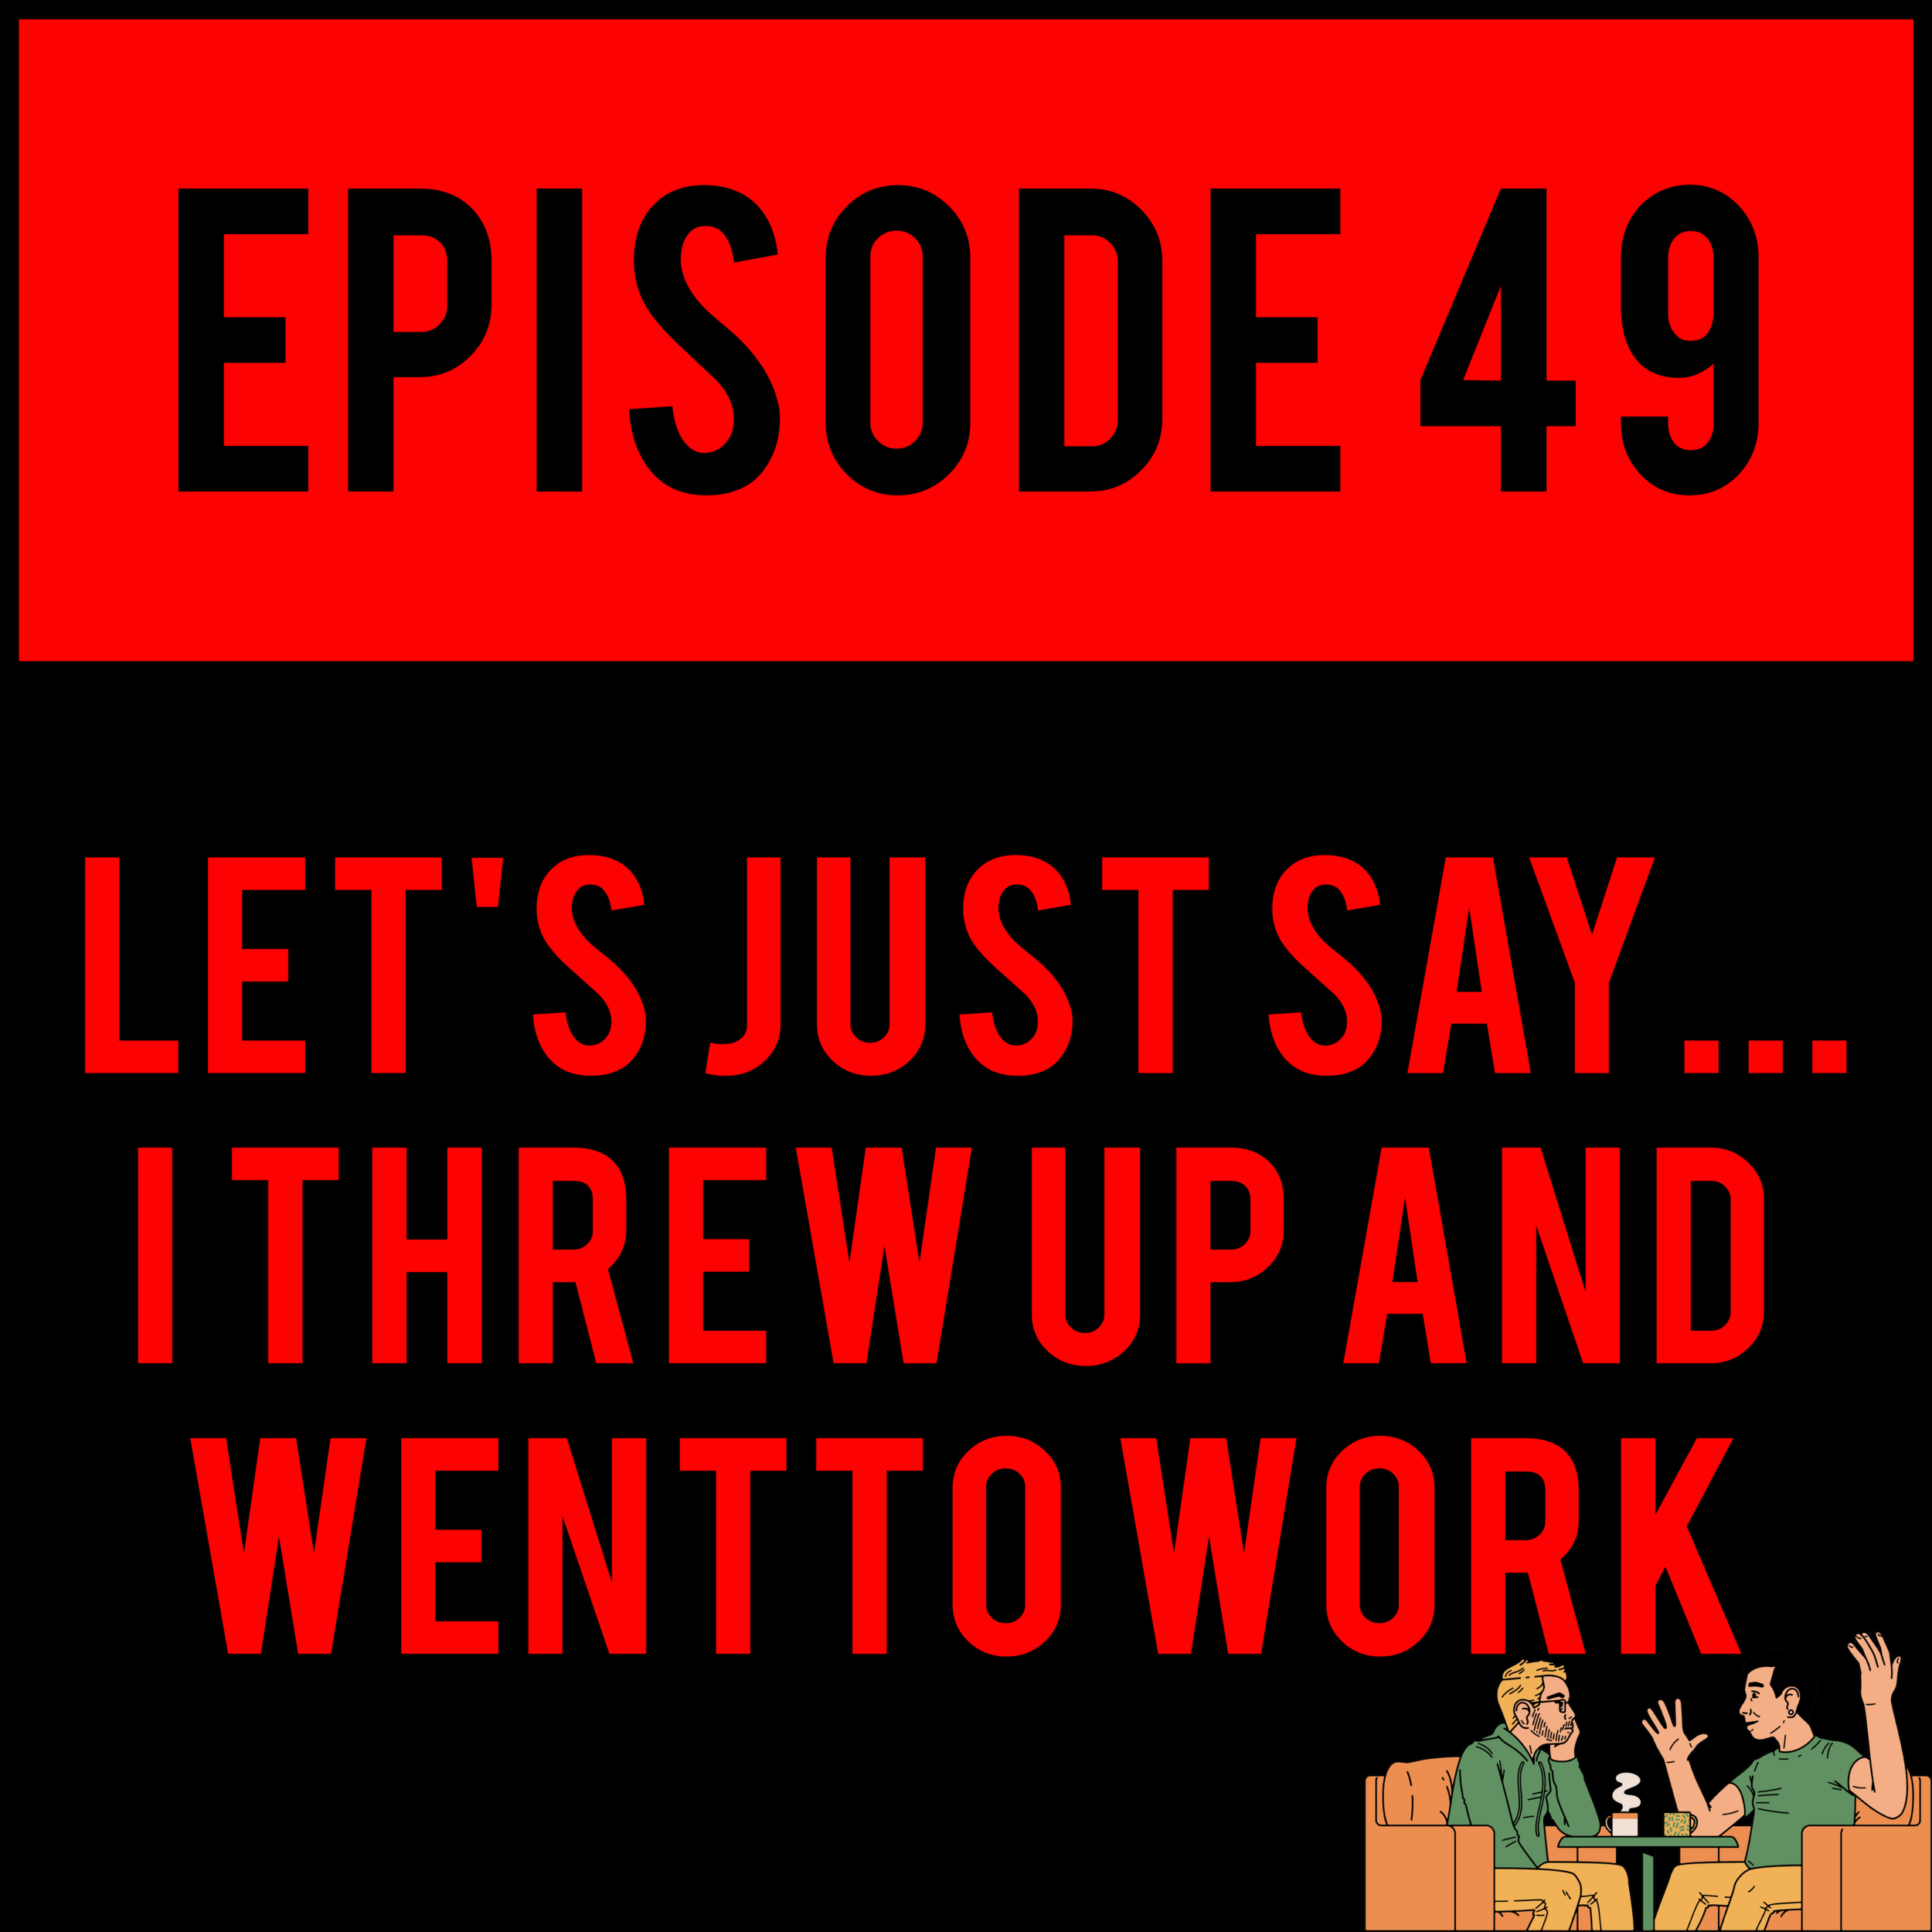 EPISODE 49 - Alex turns 36 and Justyn tries not breathing on the brand-spanking-new LET'S JUST SAY... I THREW UP AND WENT TO WORK - EPISODE 49. It's definitely not nothing.